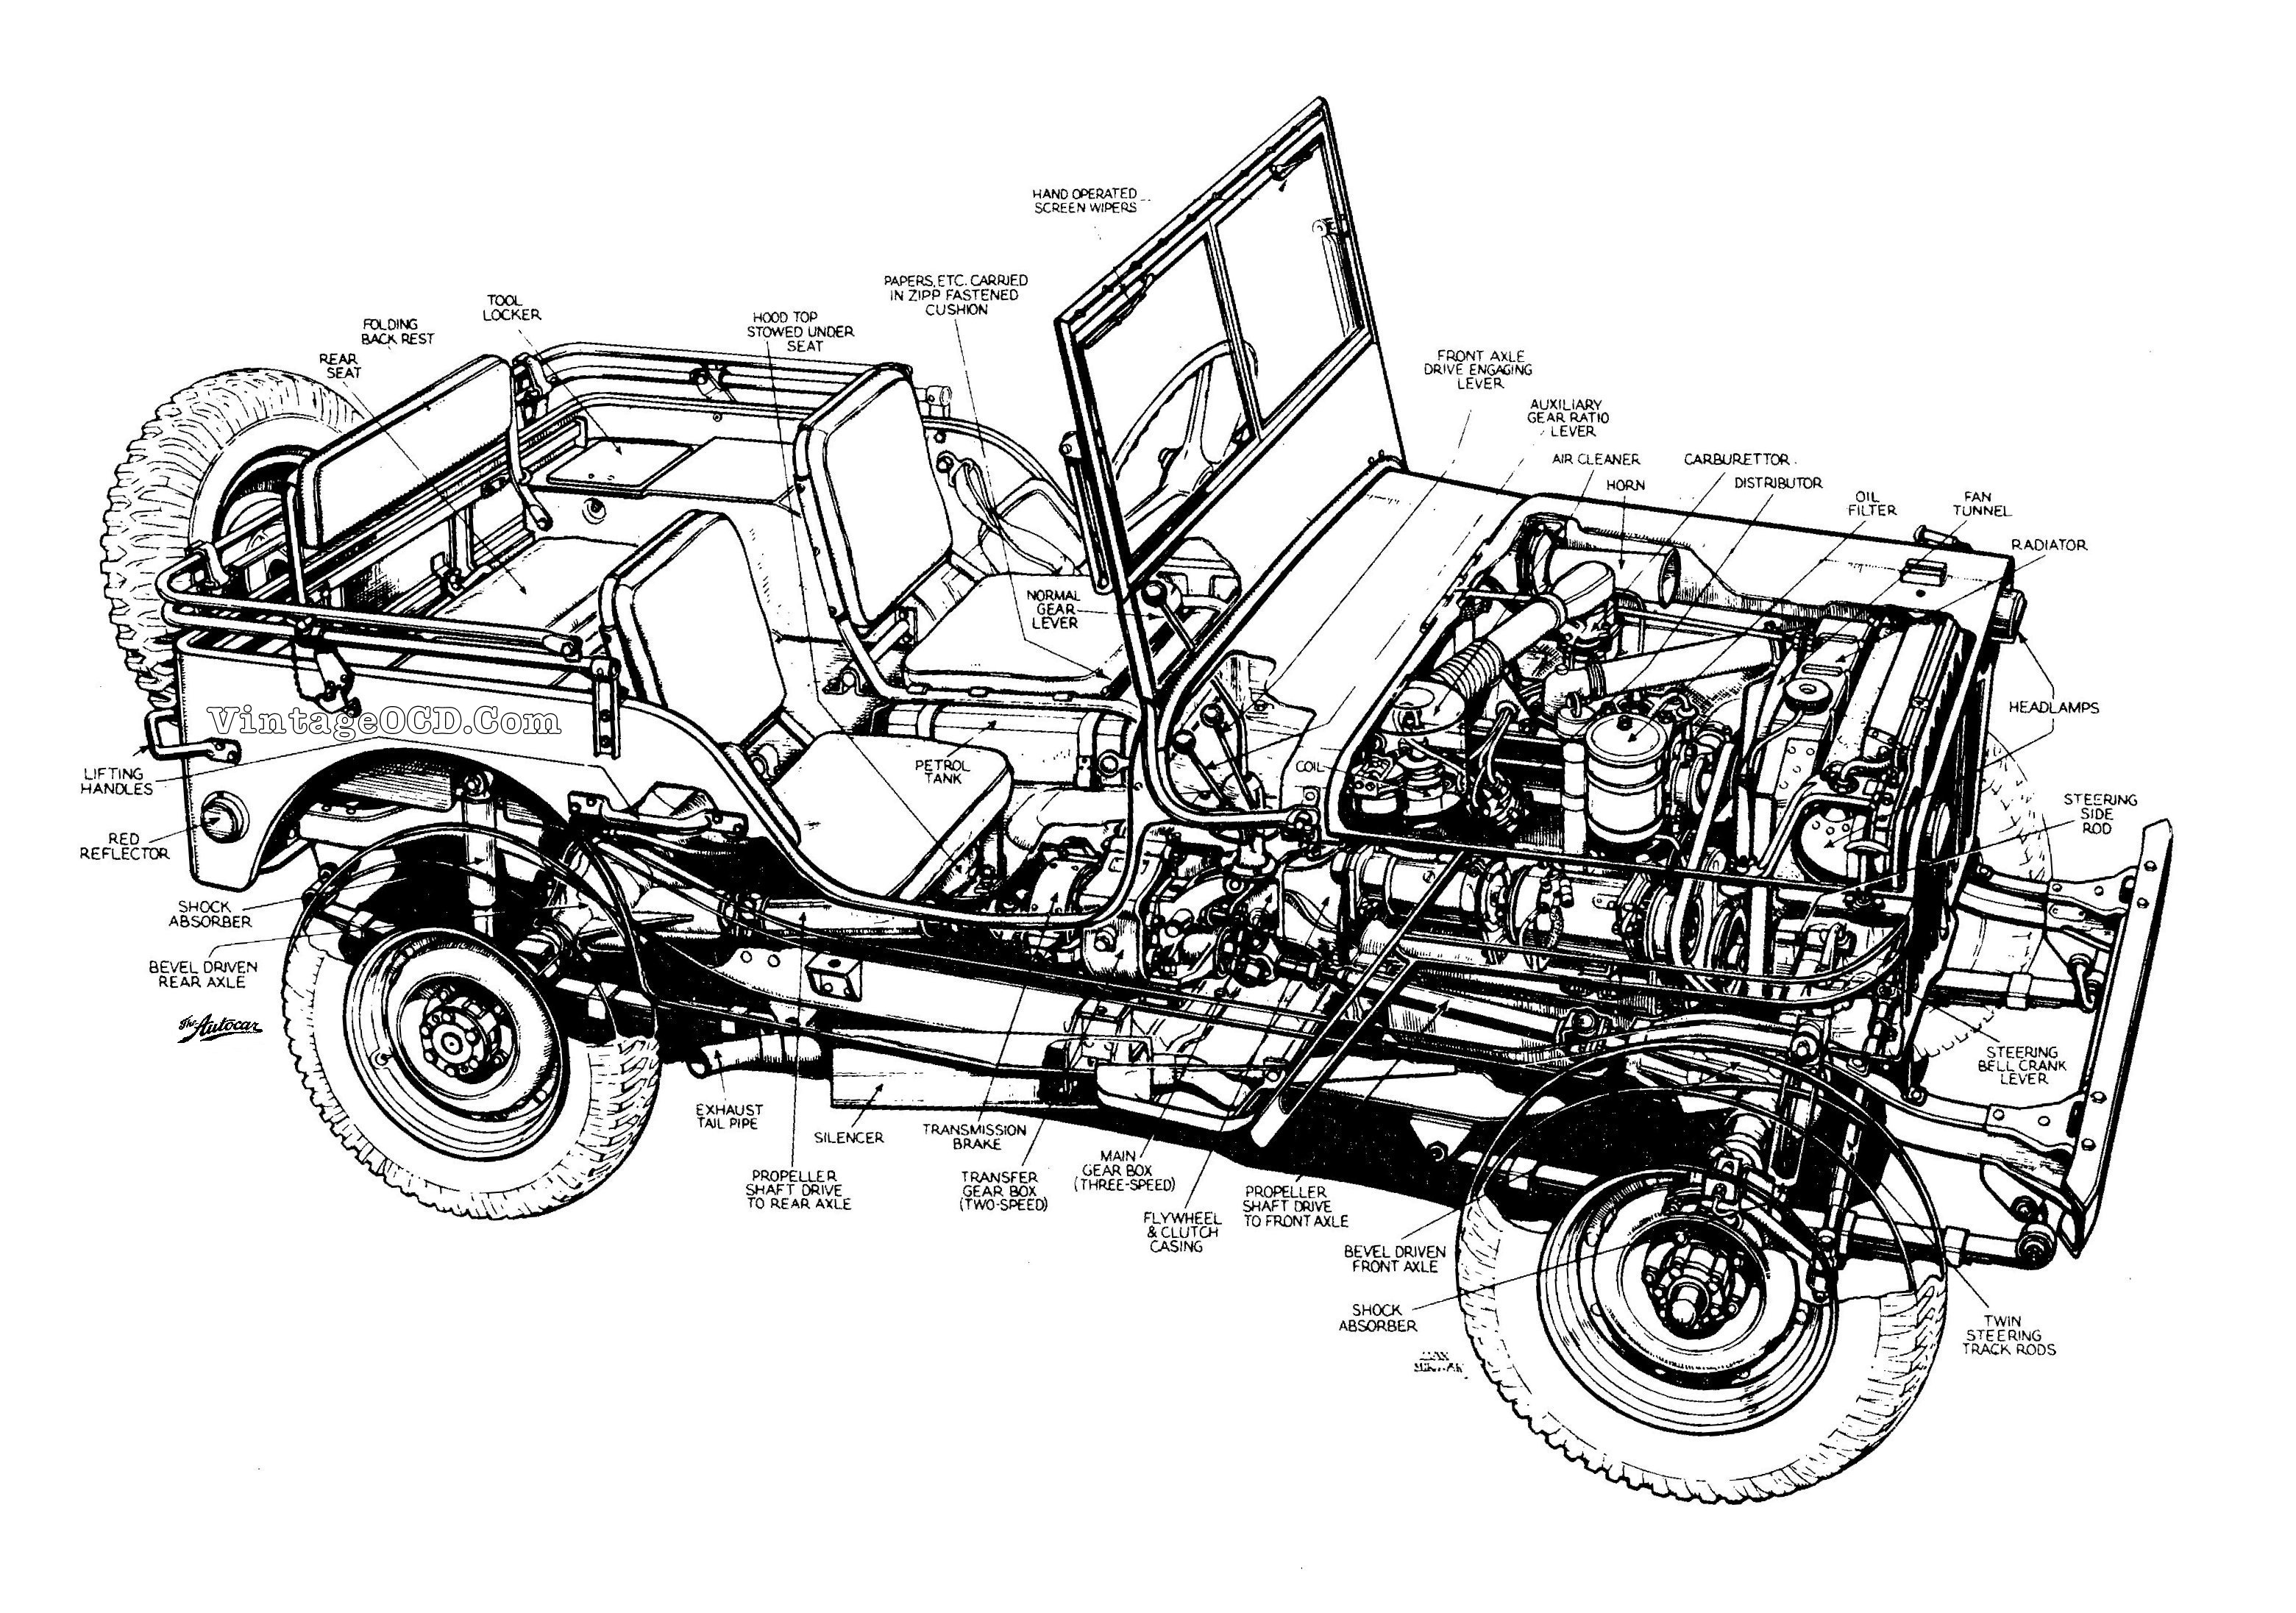 Cj3b Wiring Diagram Opinions About Vintage Ezgo Diagrams Willy U2019s Jeep Cut Away Photo Ocd Centech Ez Go 36 Volt